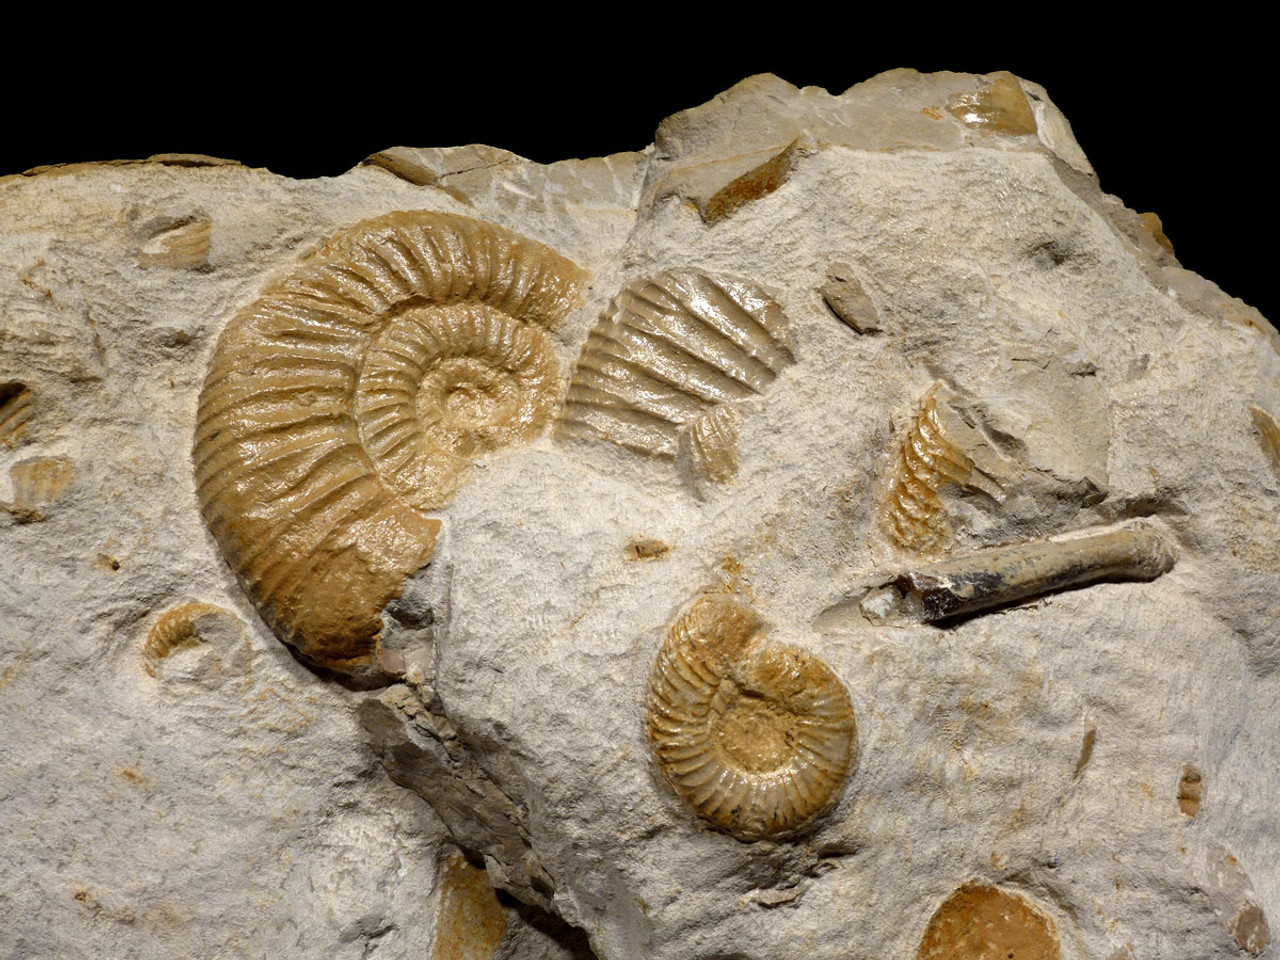 STUNNING GIANT MASS EXTINCTION OCEAN FOSSIL WITH AMMONITES BELEMNITES AND PREHISTORIC OYSTERS *AMX390